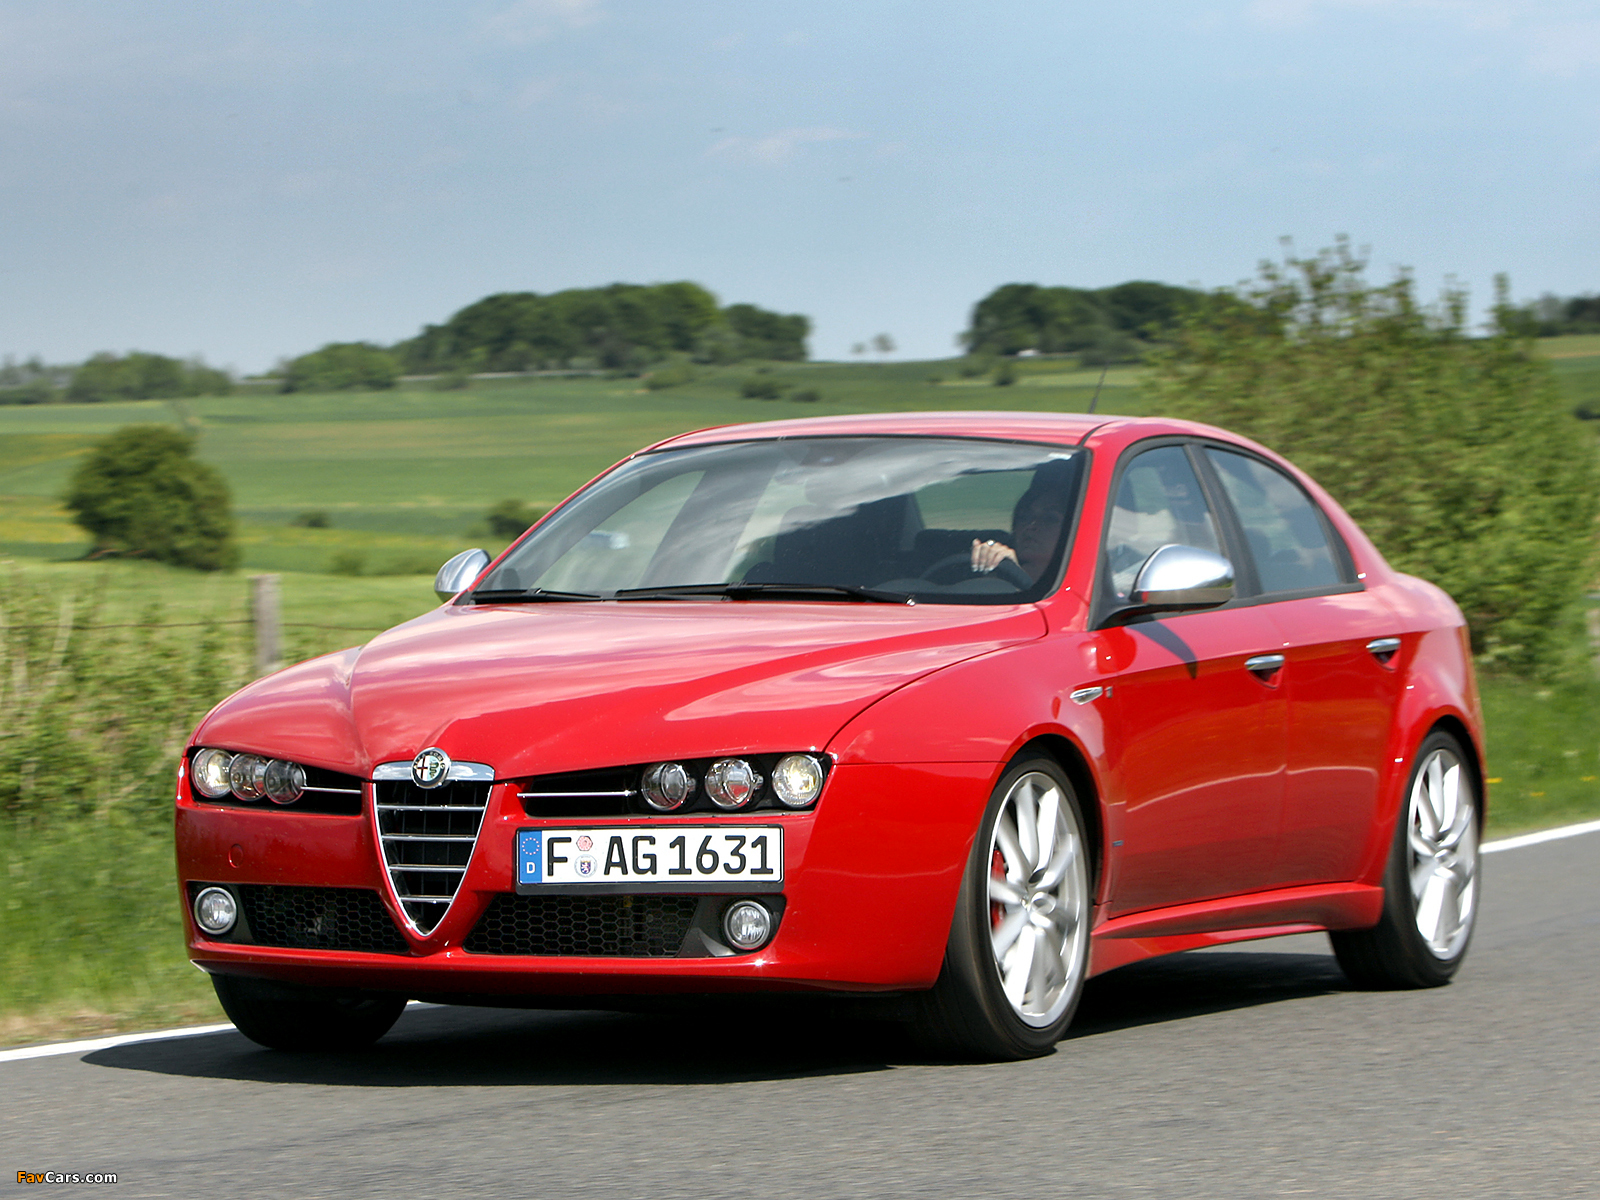 wallpapers of alfa romeo 159 ti 939a 2007 2008 1600x1200. Black Bedroom Furniture Sets. Home Design Ideas